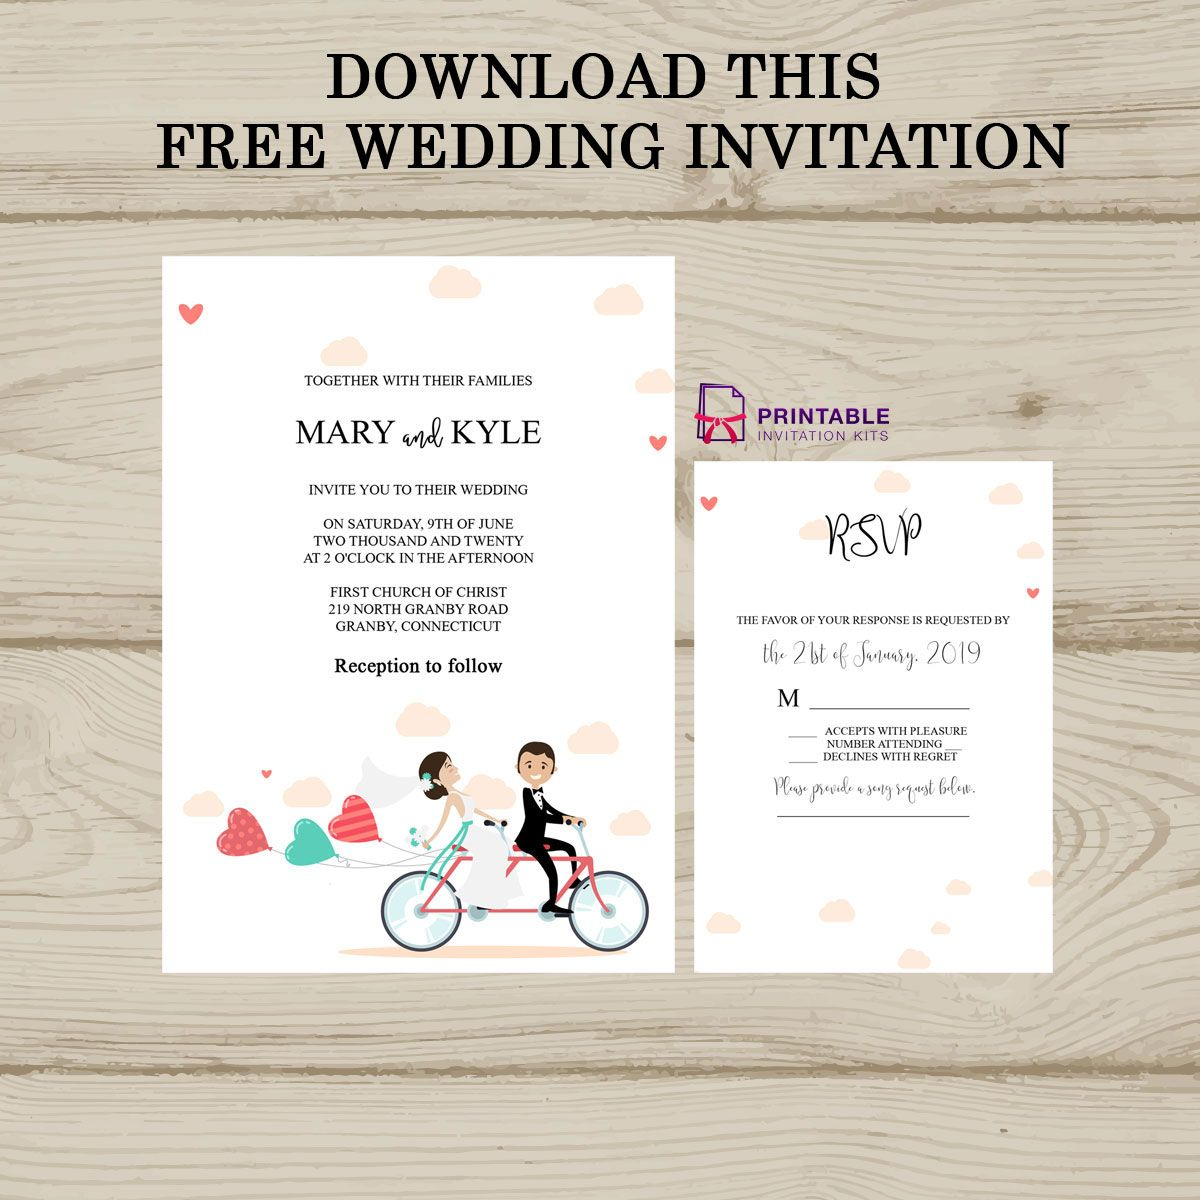 This Free Wedding Invitation Template Is Free To Download Wedding Invitations Printable Templates Wedding Invitation Inserts Wedding Invitation Templates